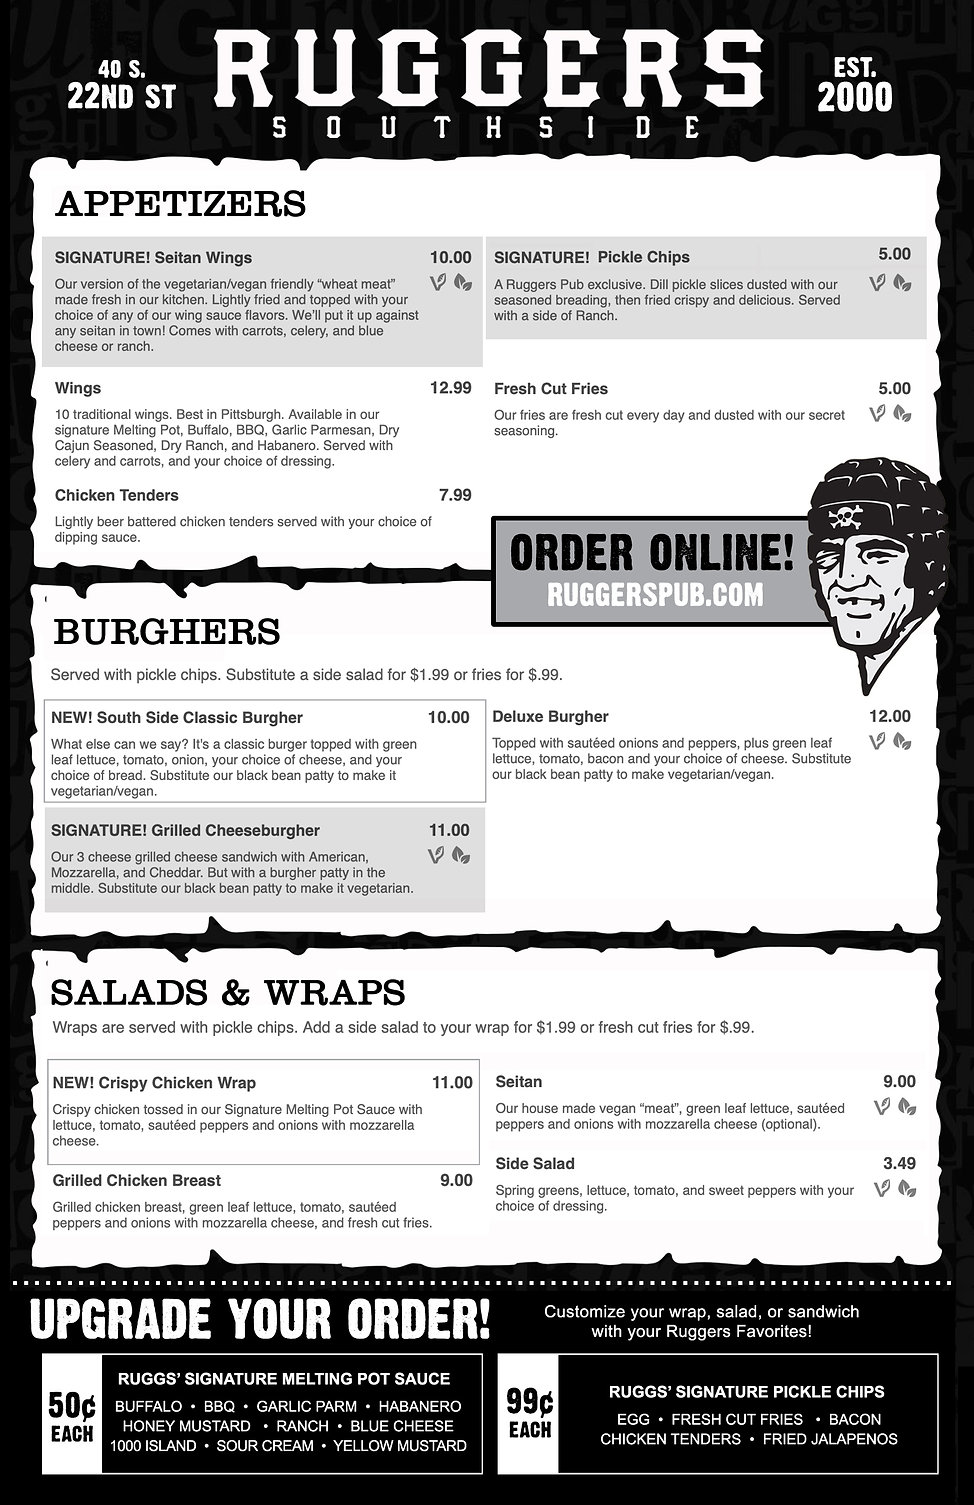 ruggers-pub-southide-pittsburgh-menu-pub